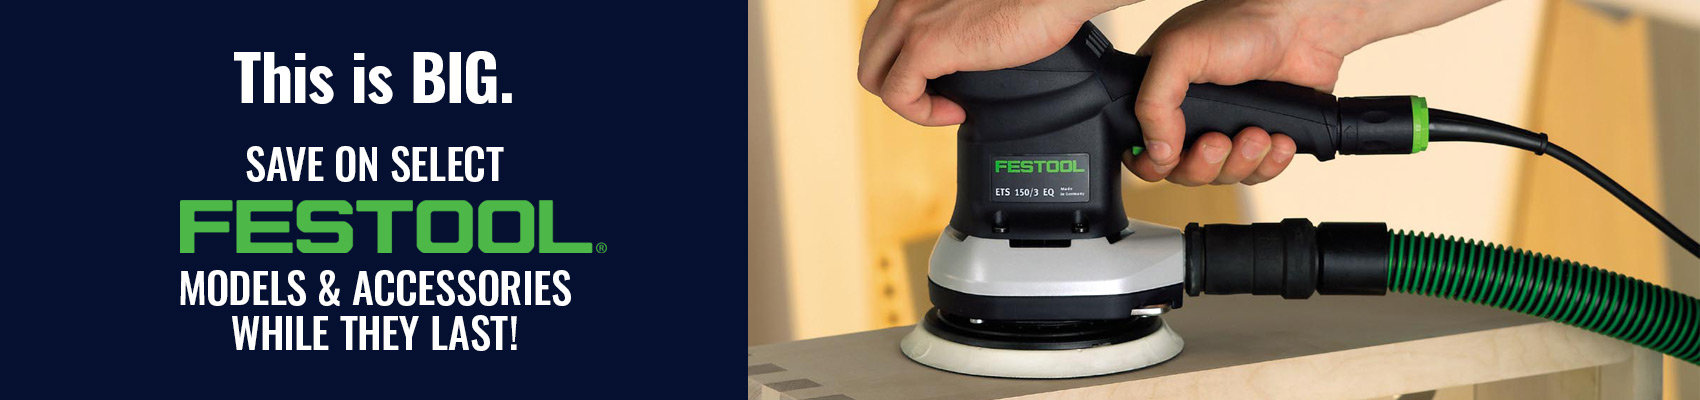 Shop FESTOOL Sale